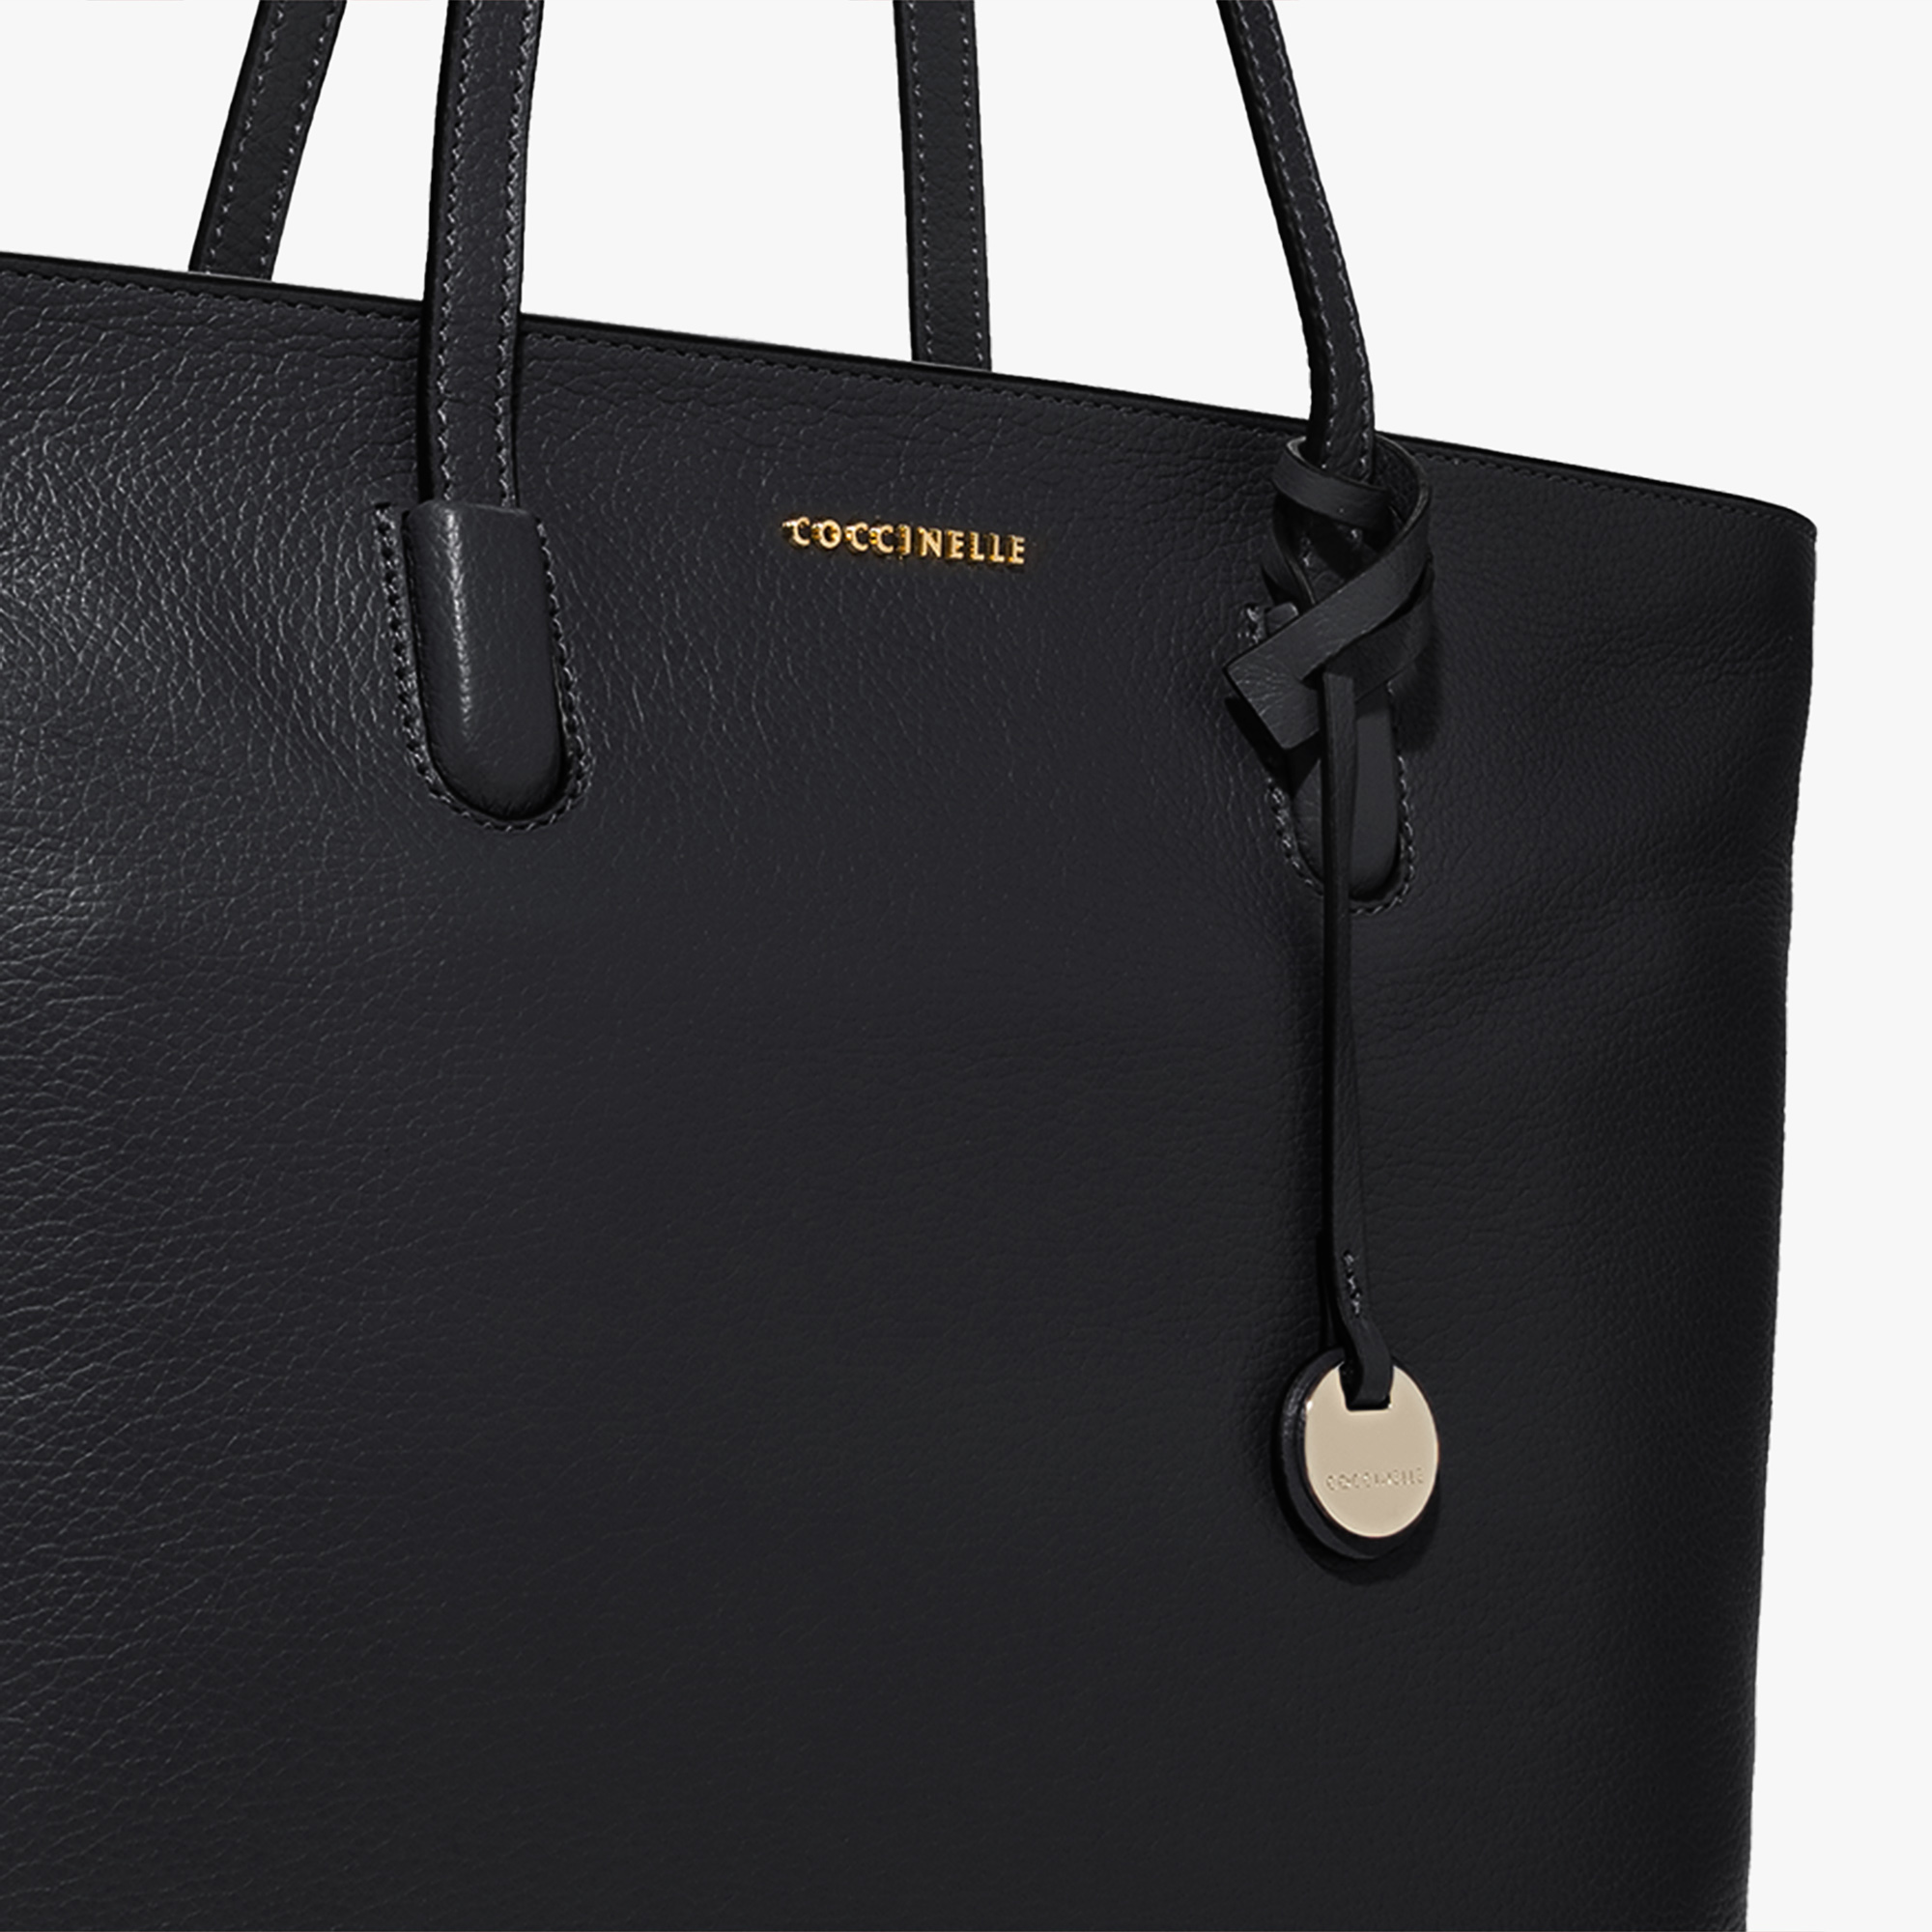 Coccinelle Clementine leather shopping tote